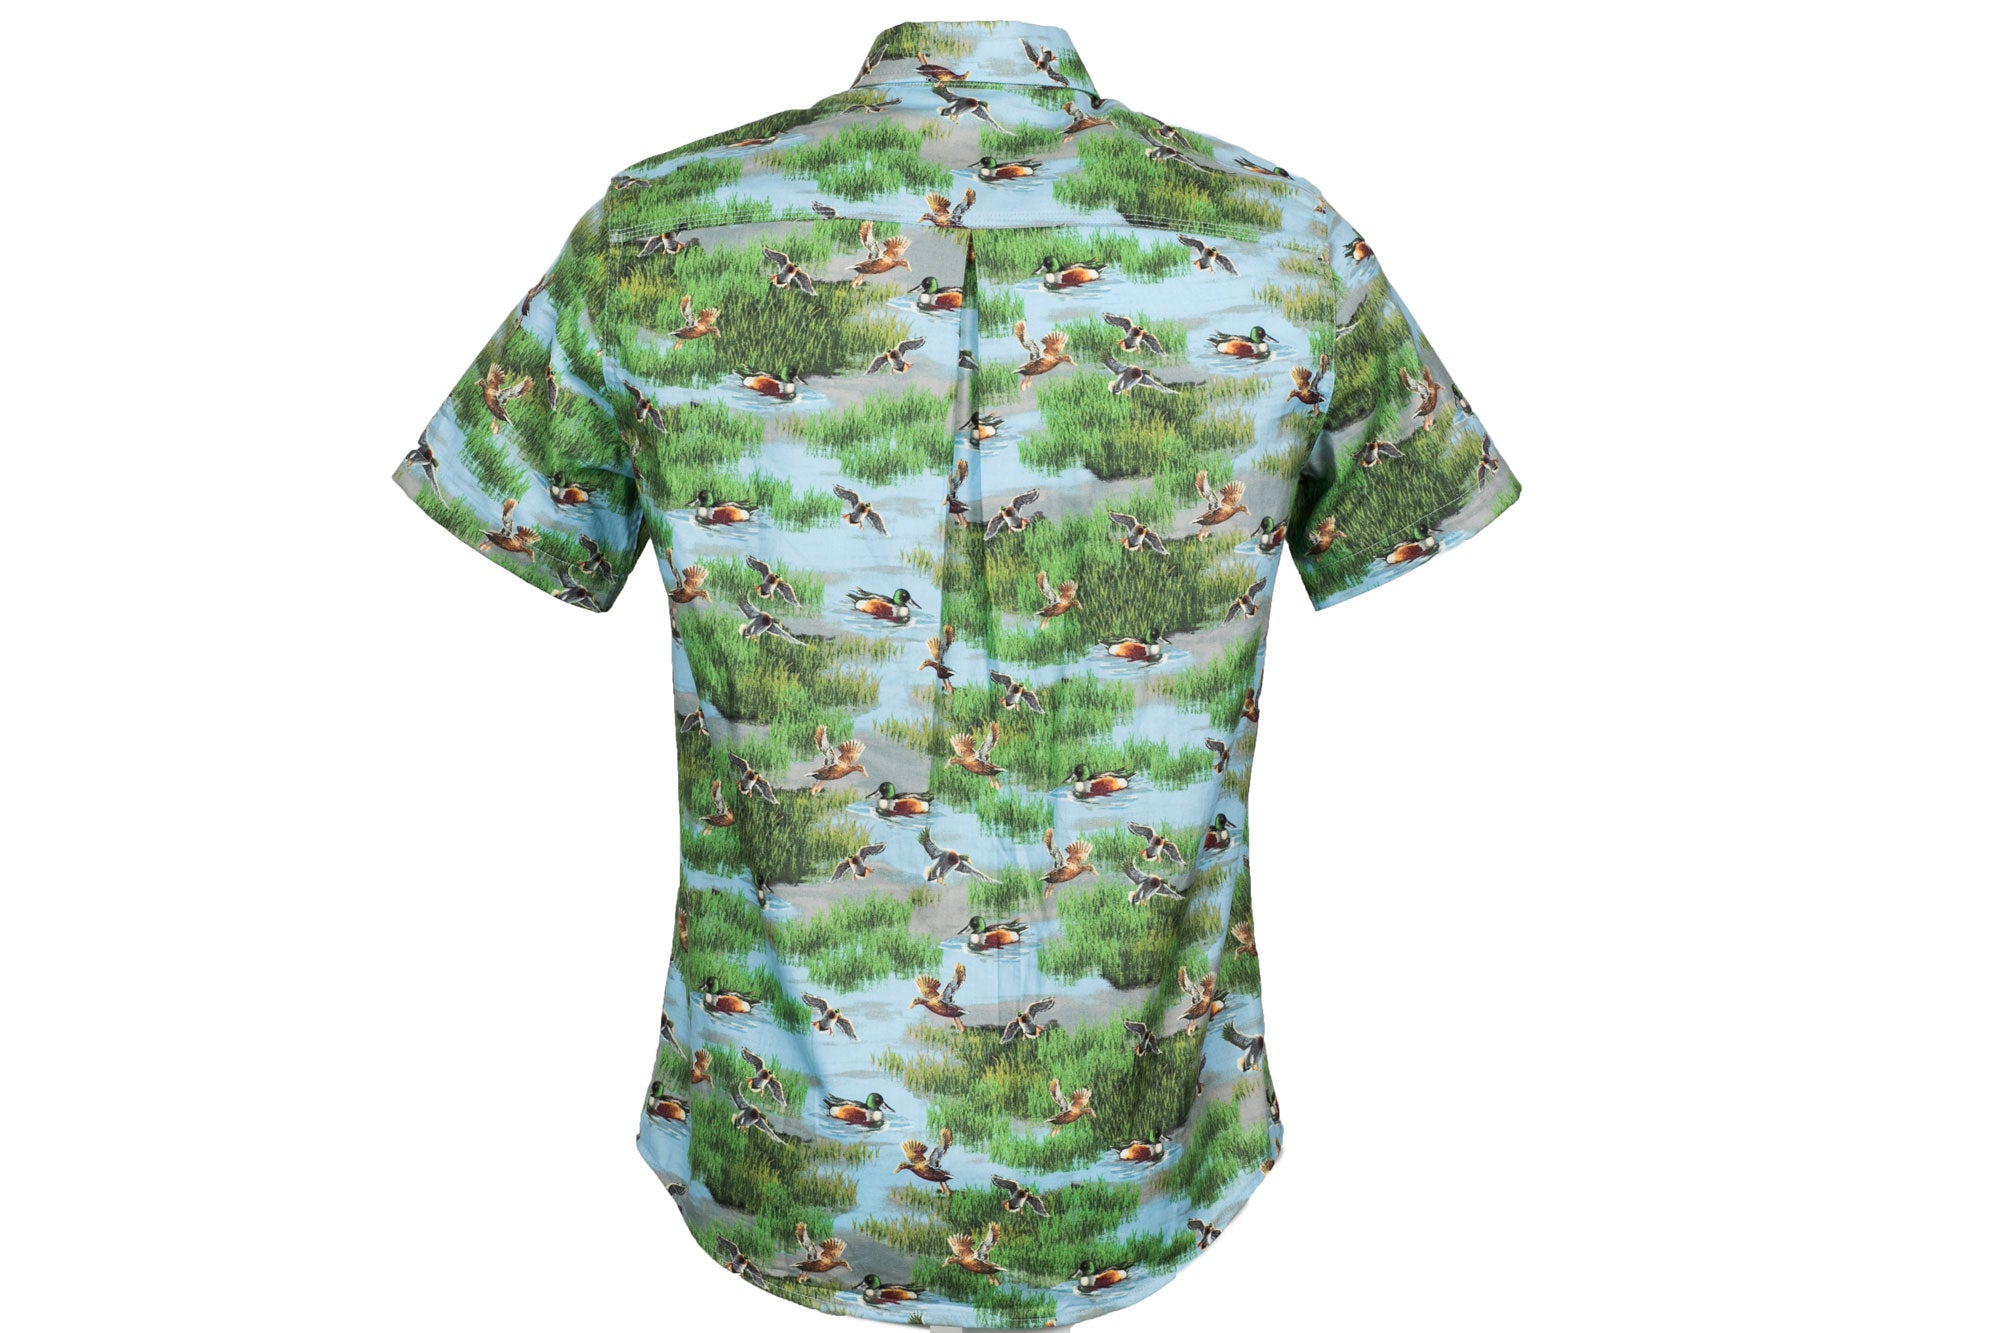 Men's S/S- Printed Mallard Ducks